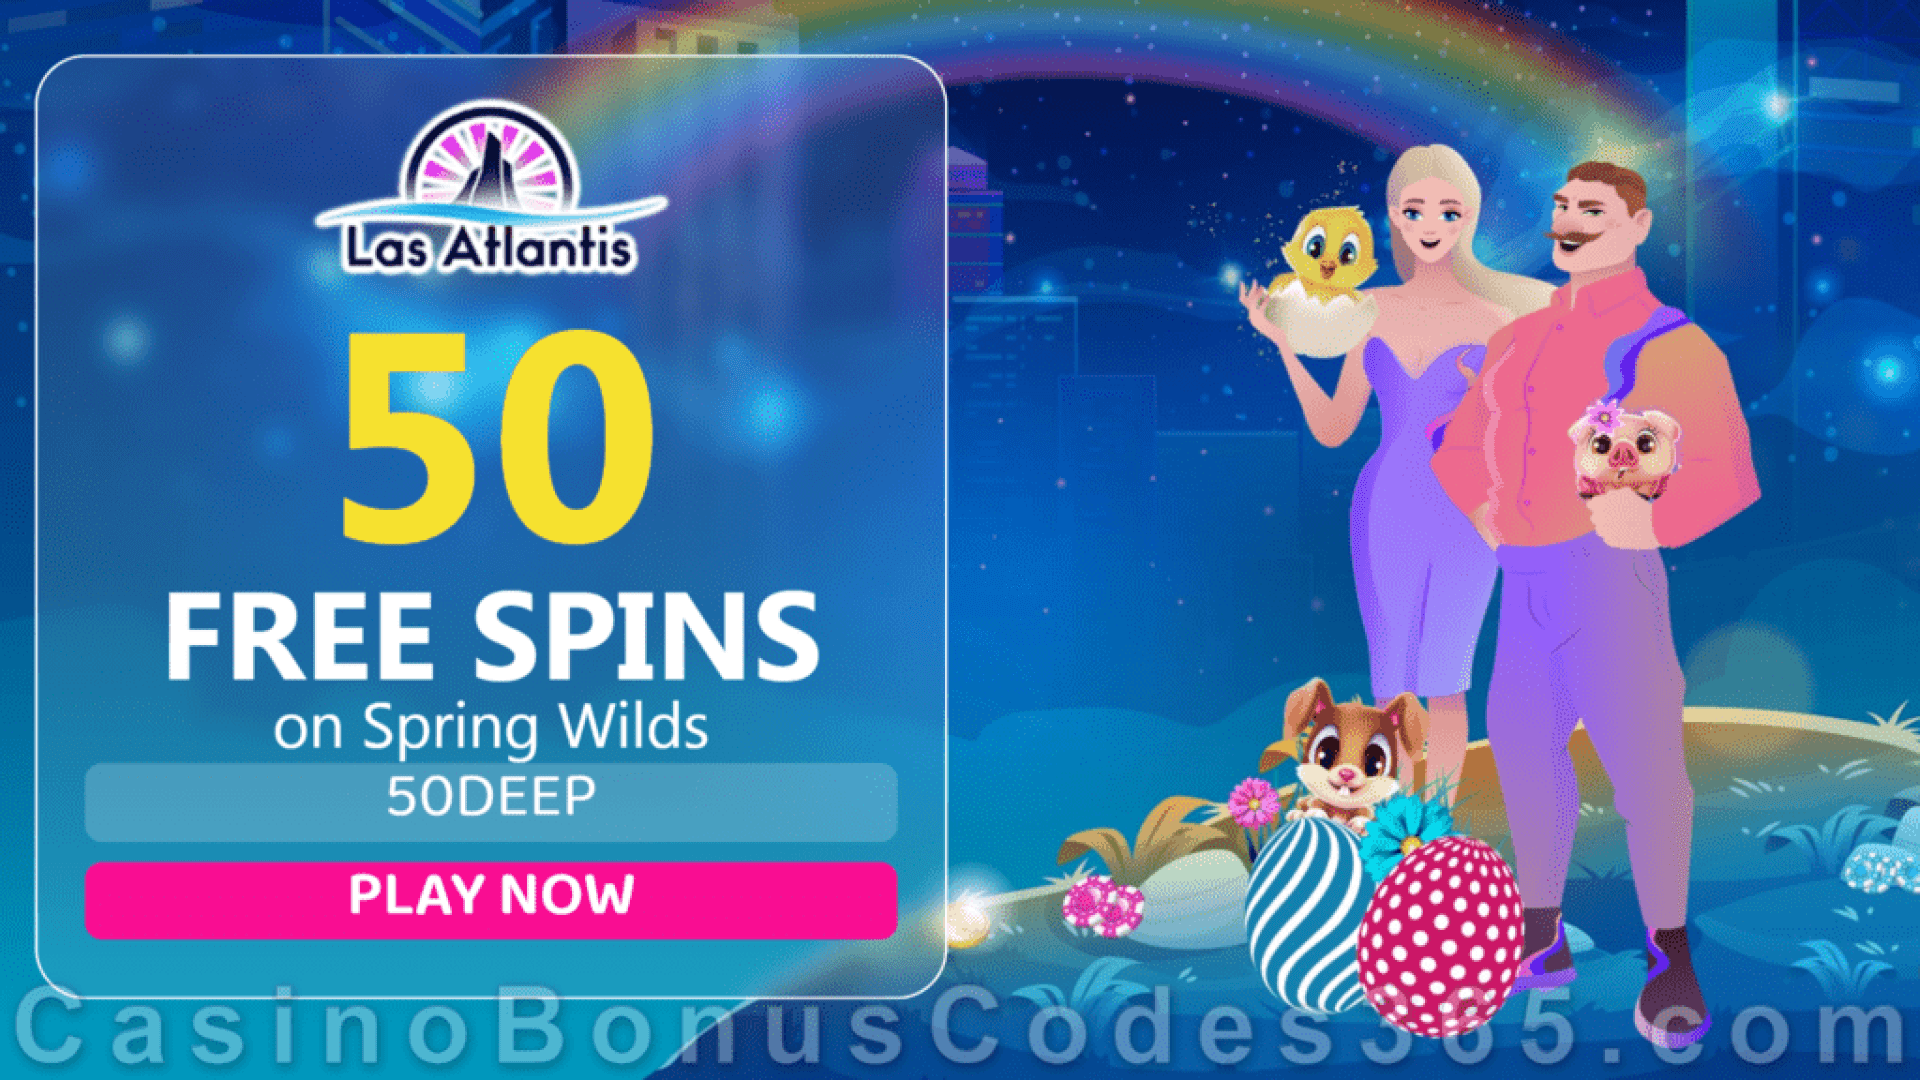 Las Atlantis Casino 50 FREE Spins on Spring Wilds New RTG Game Special Deal